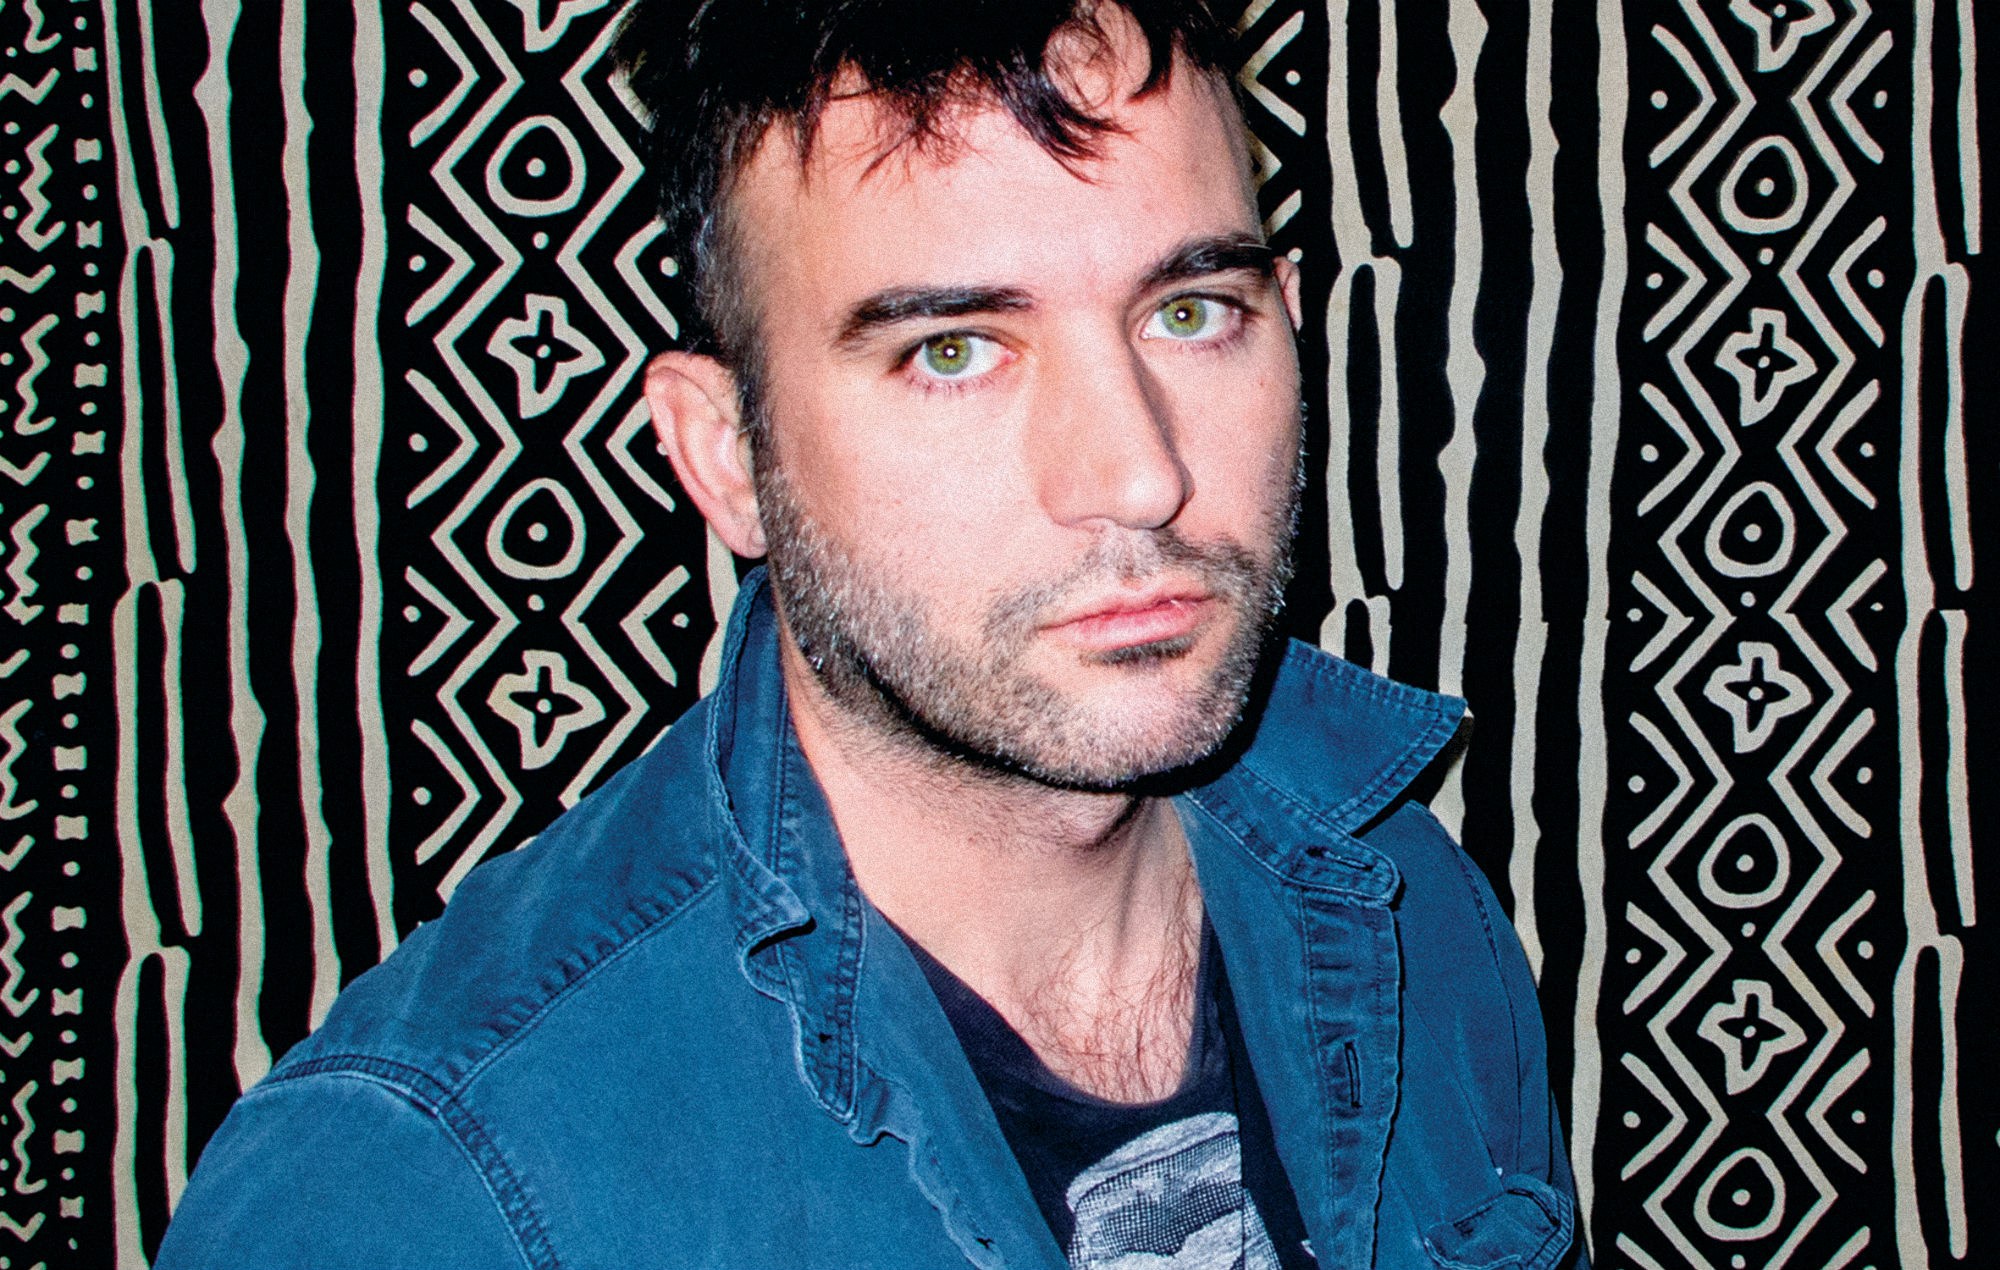 Listen to Sufjan Stevens' 'America' B-side, the ten-minute epic 'My Rajneesh' | NME